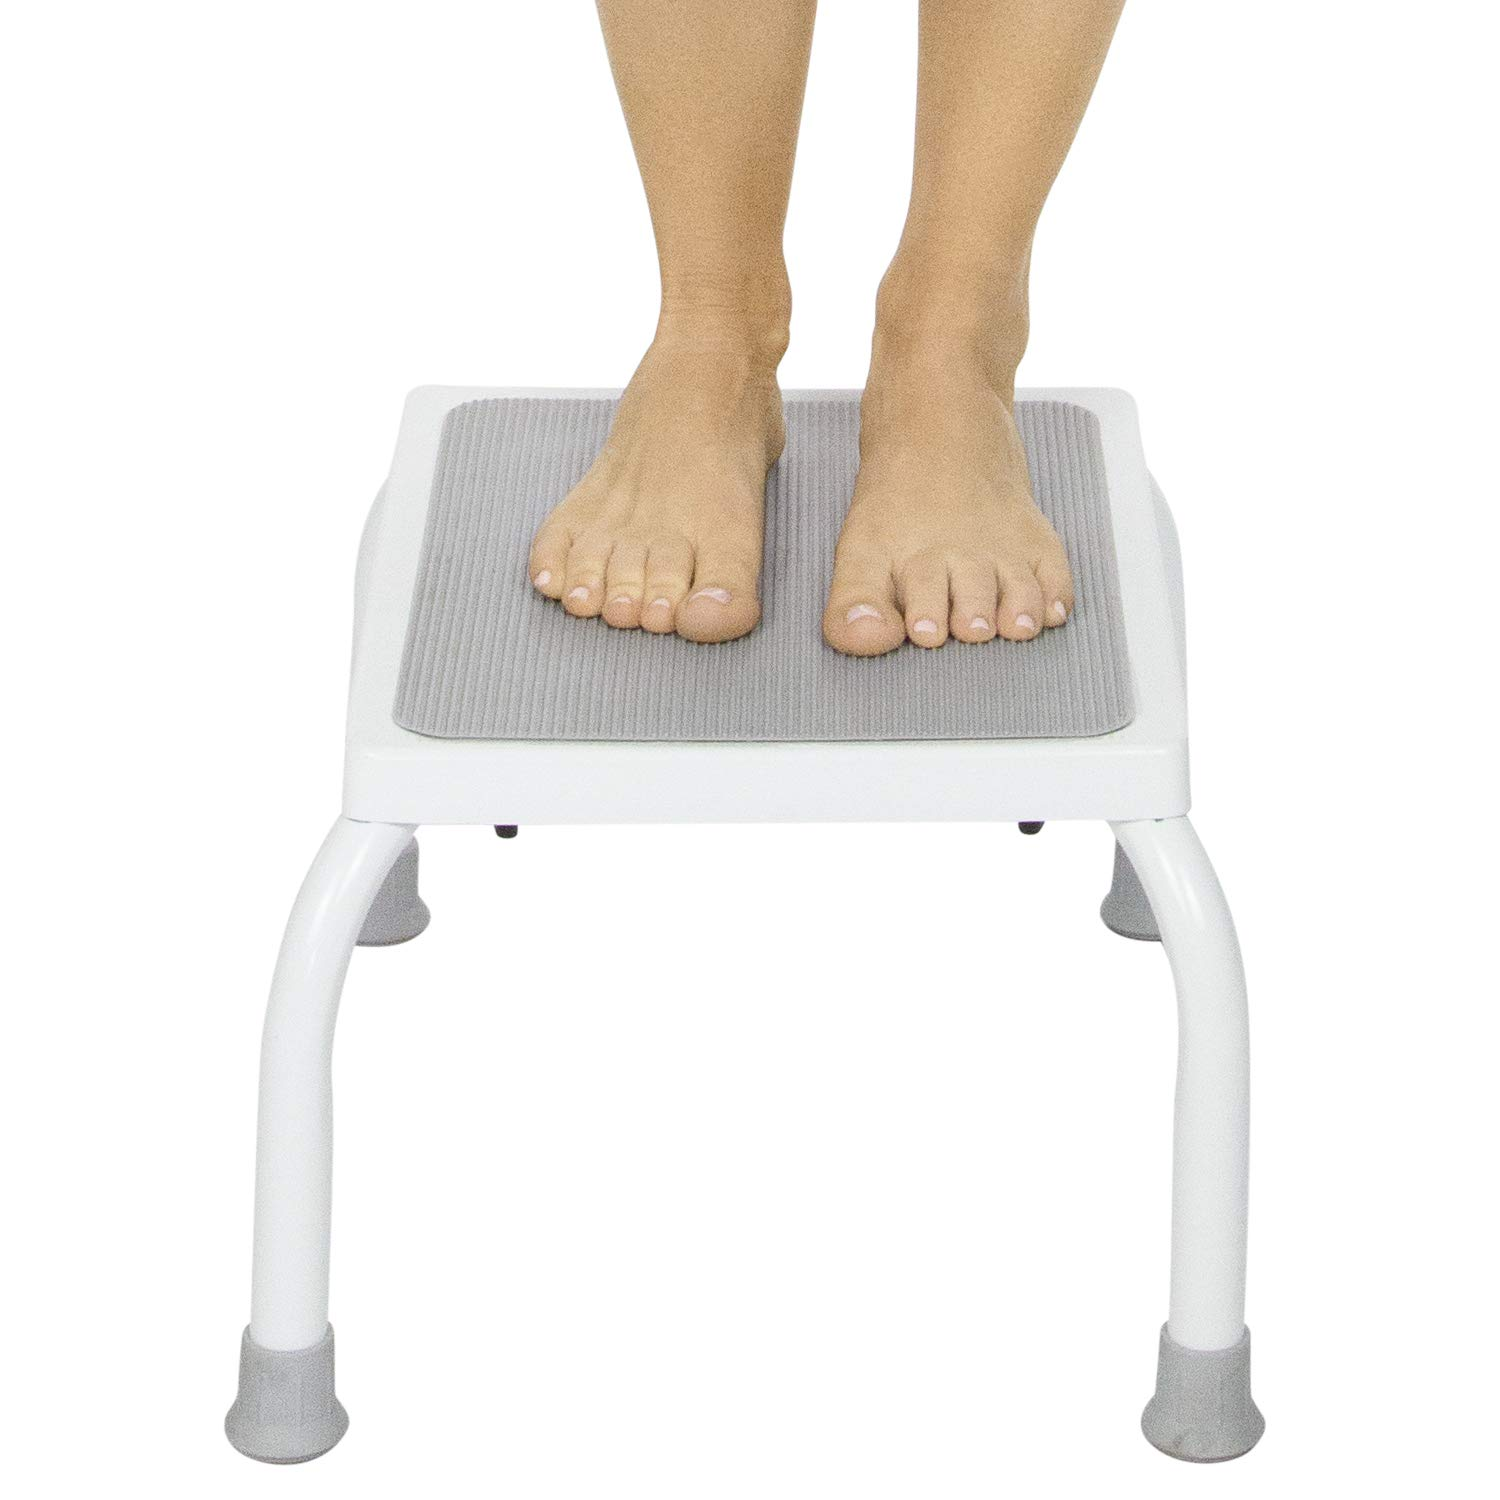 Vive Step Stool - Footstool for Adults and Kids - Foot Platform for Kitchen, Bedroom, Bathroom - One Portable, Medical Bariatric, Lightweight Step for Elderly Child, Senior, Handicap - W/Rubber Grips